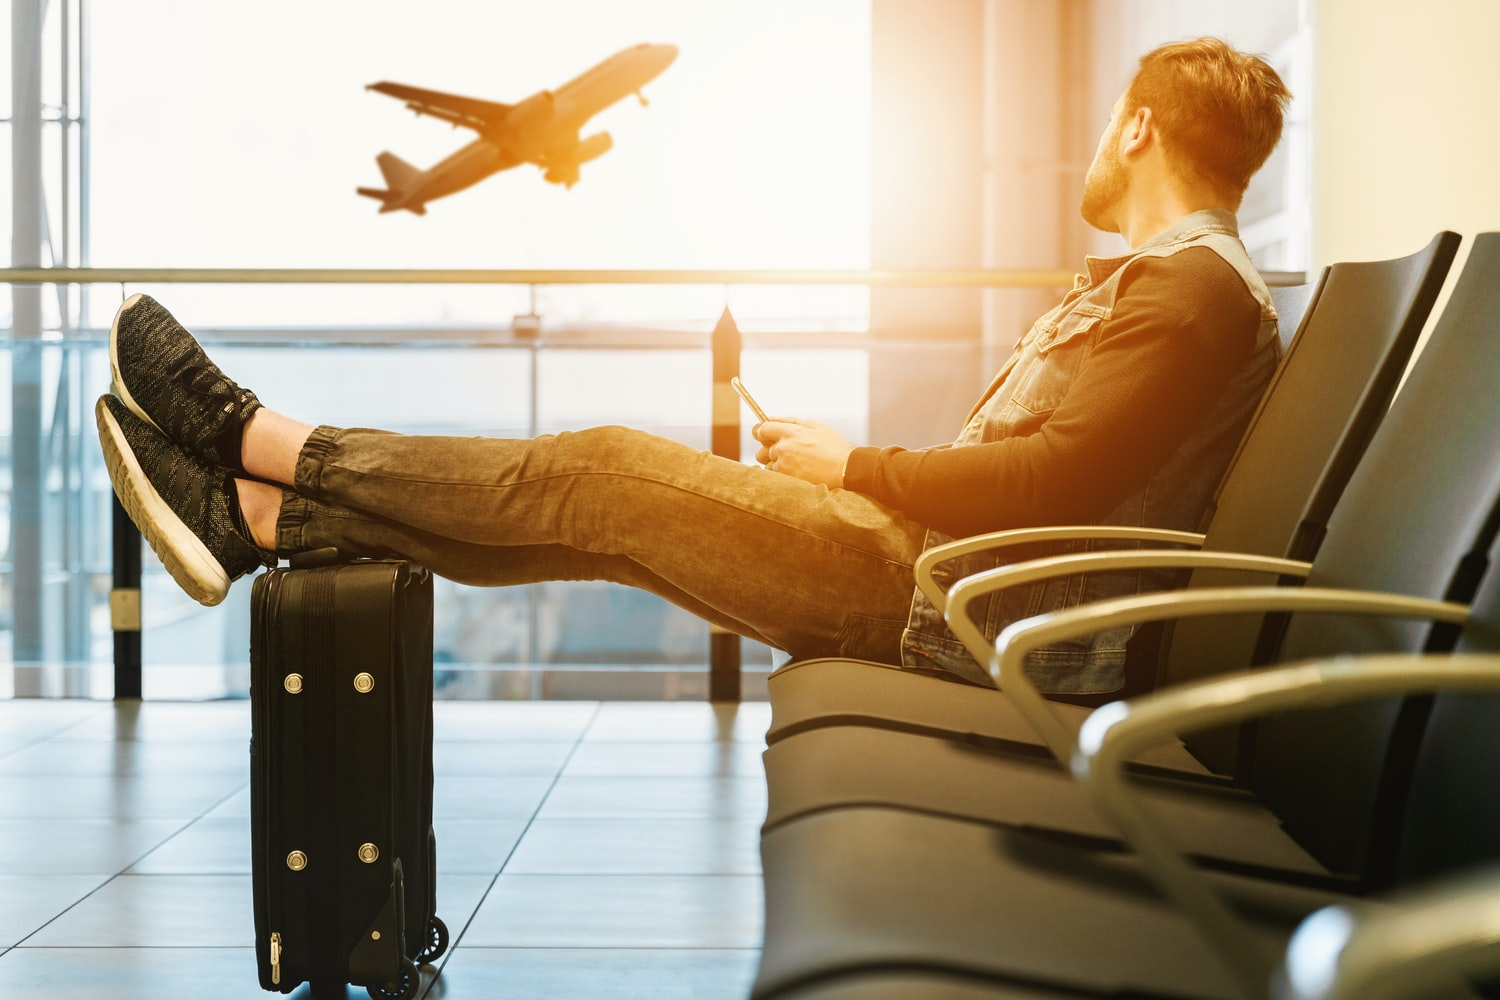 How to Get Comfortable During Plane Rides?